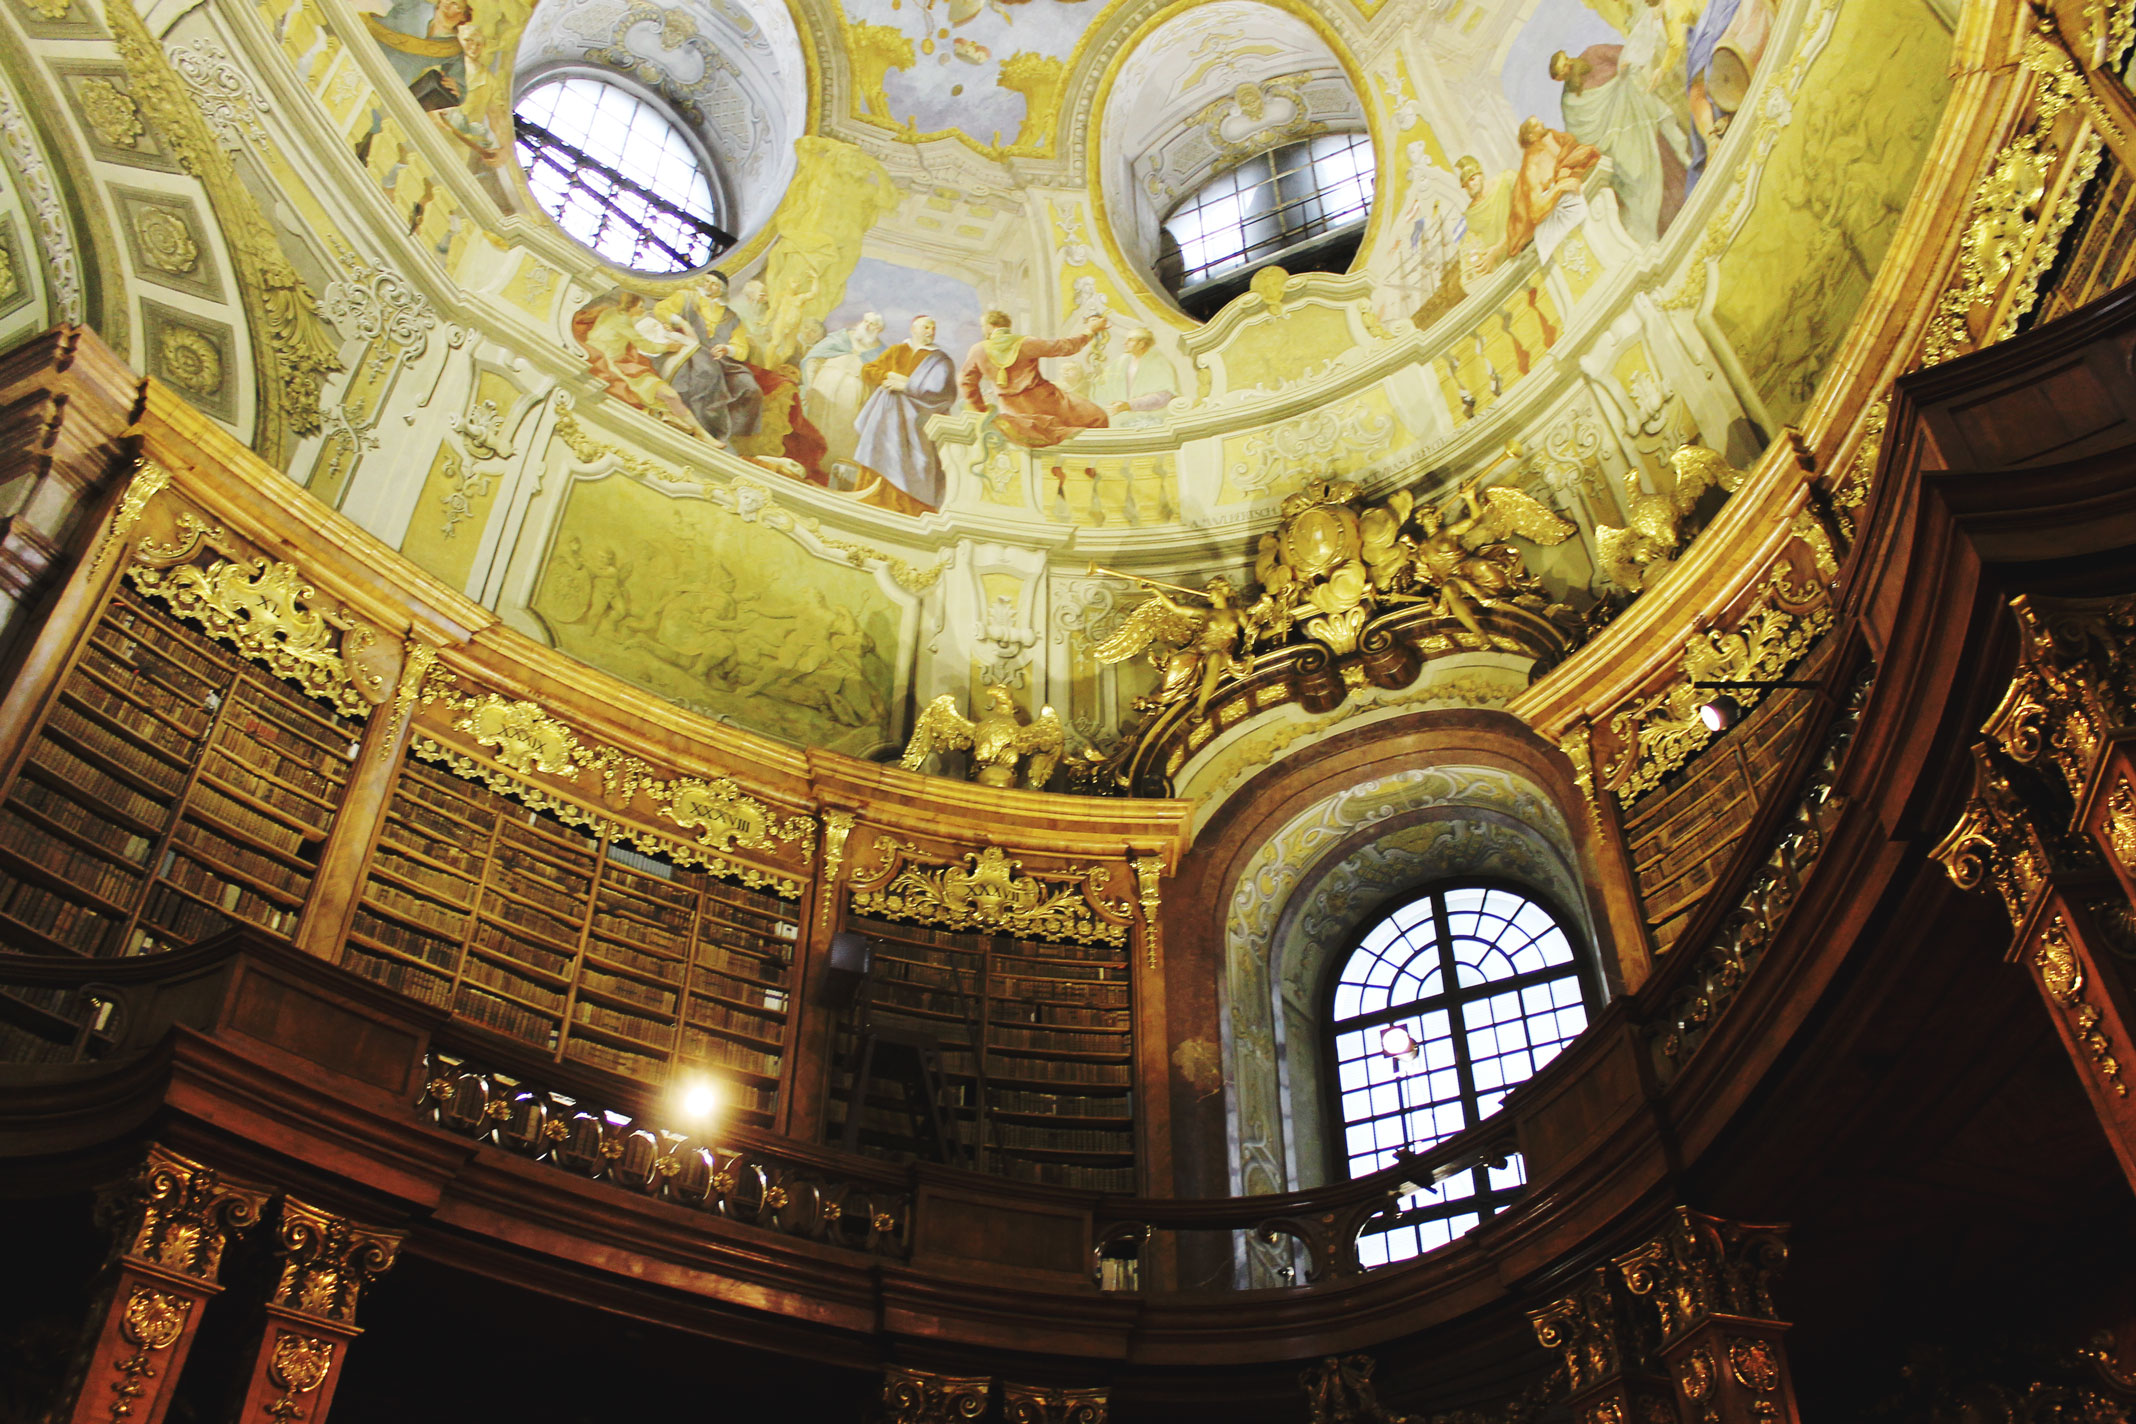 STYLEAT30 Travel + Fashion Blog - Vienna State Hall - Austrian National Library - Vienna Travel Guide - Austria - 3